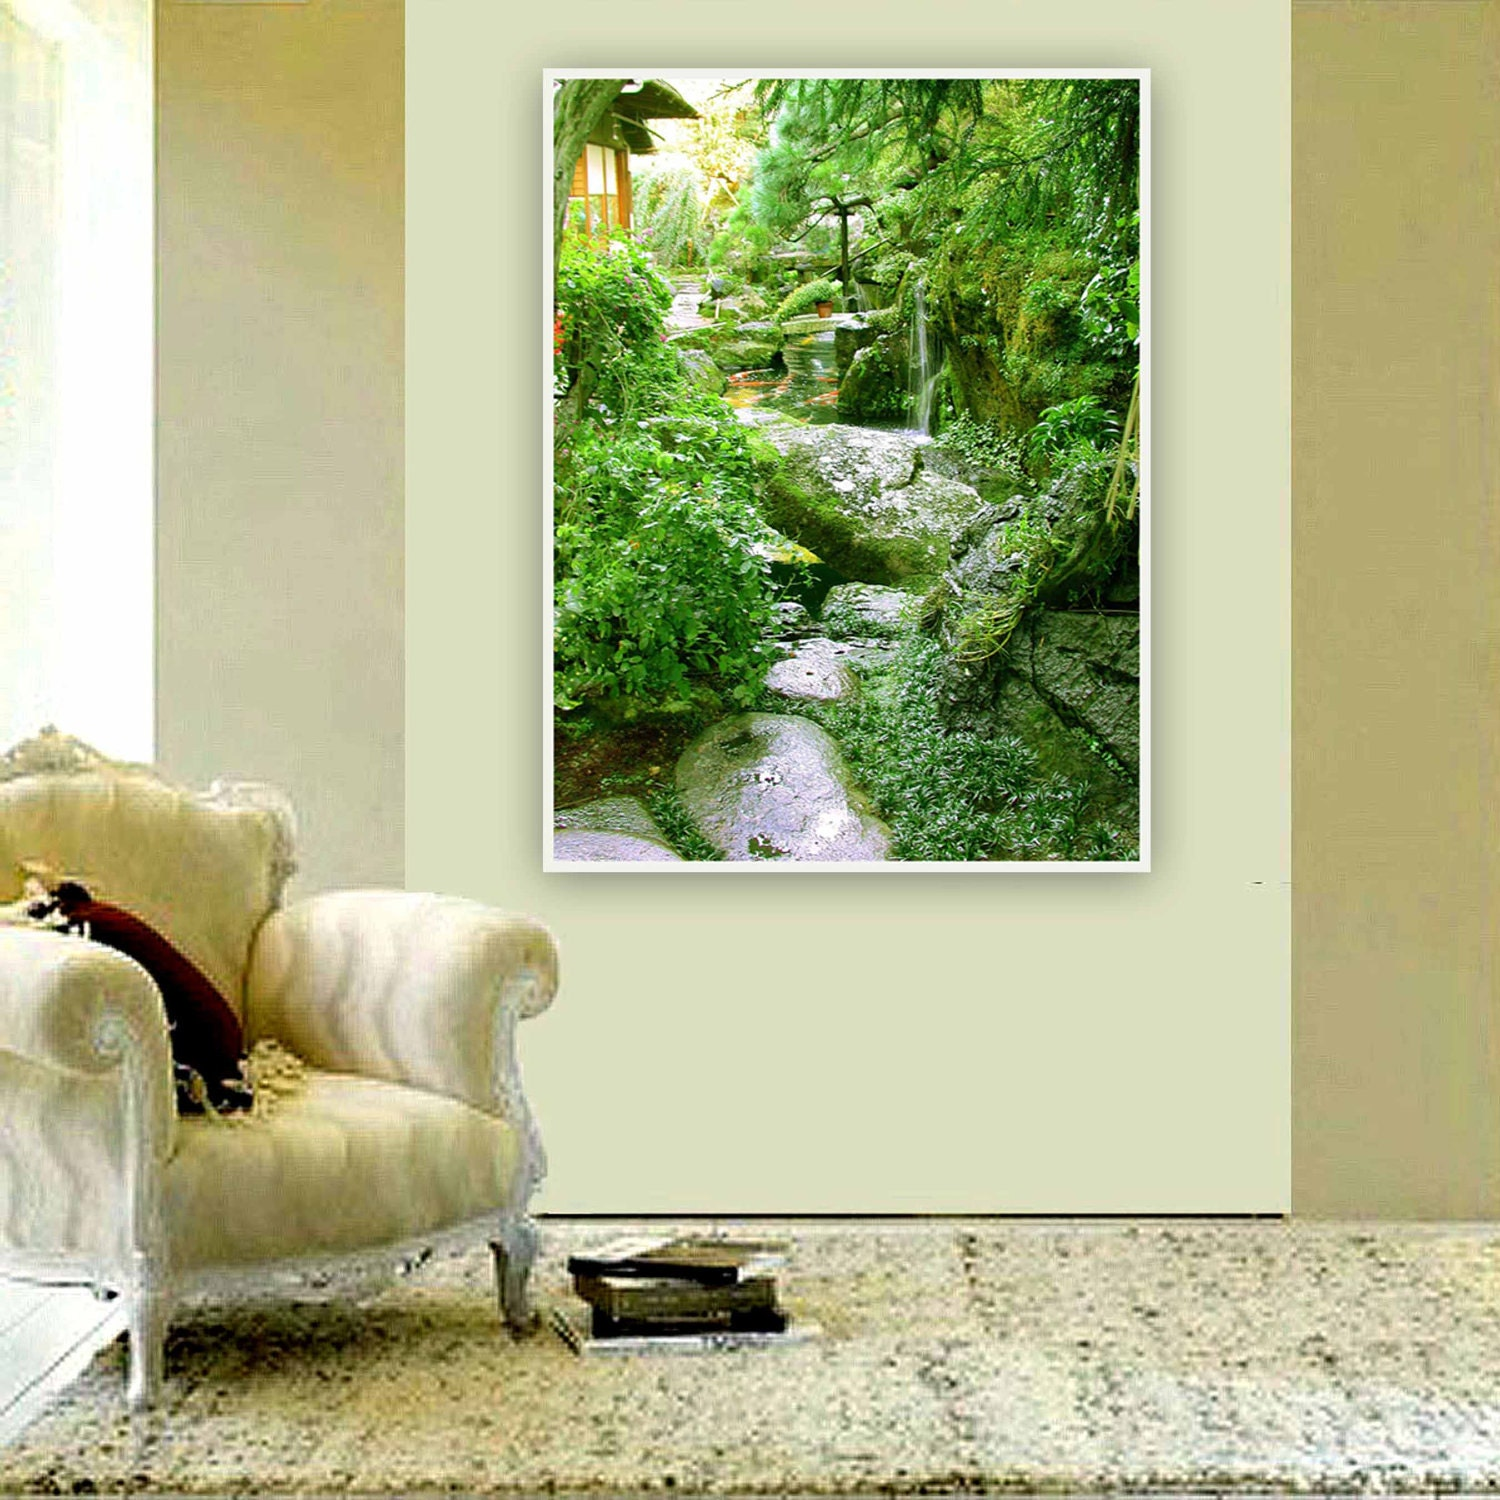 Photography 8 x 10 modern wall art decor feng shui for Bureau zen feng shui